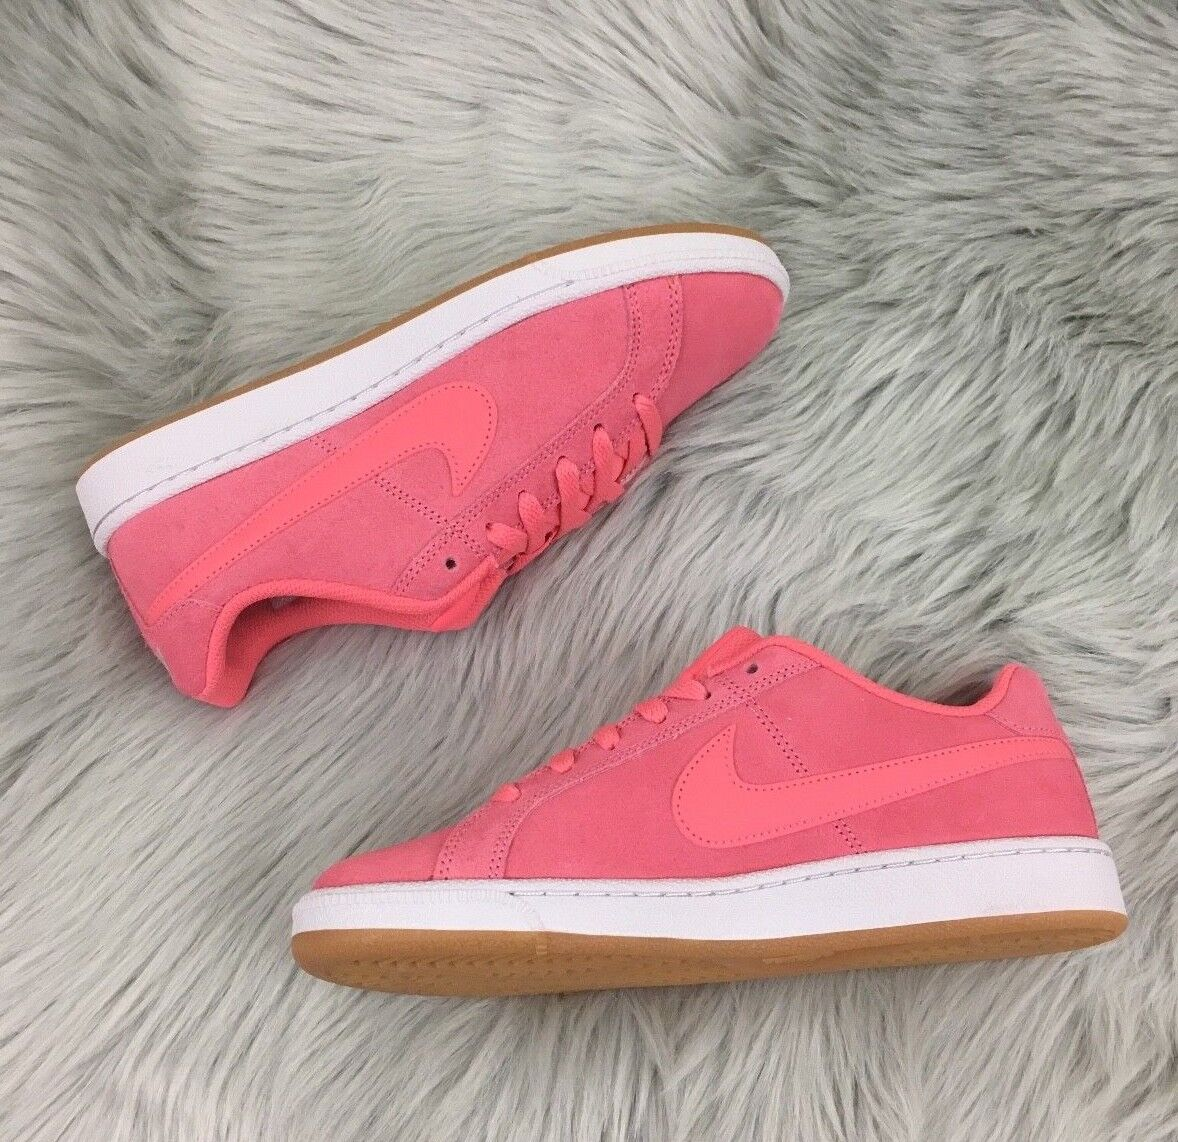 New Nike Court Royale Suede Turnschuhe (US Größe 7)